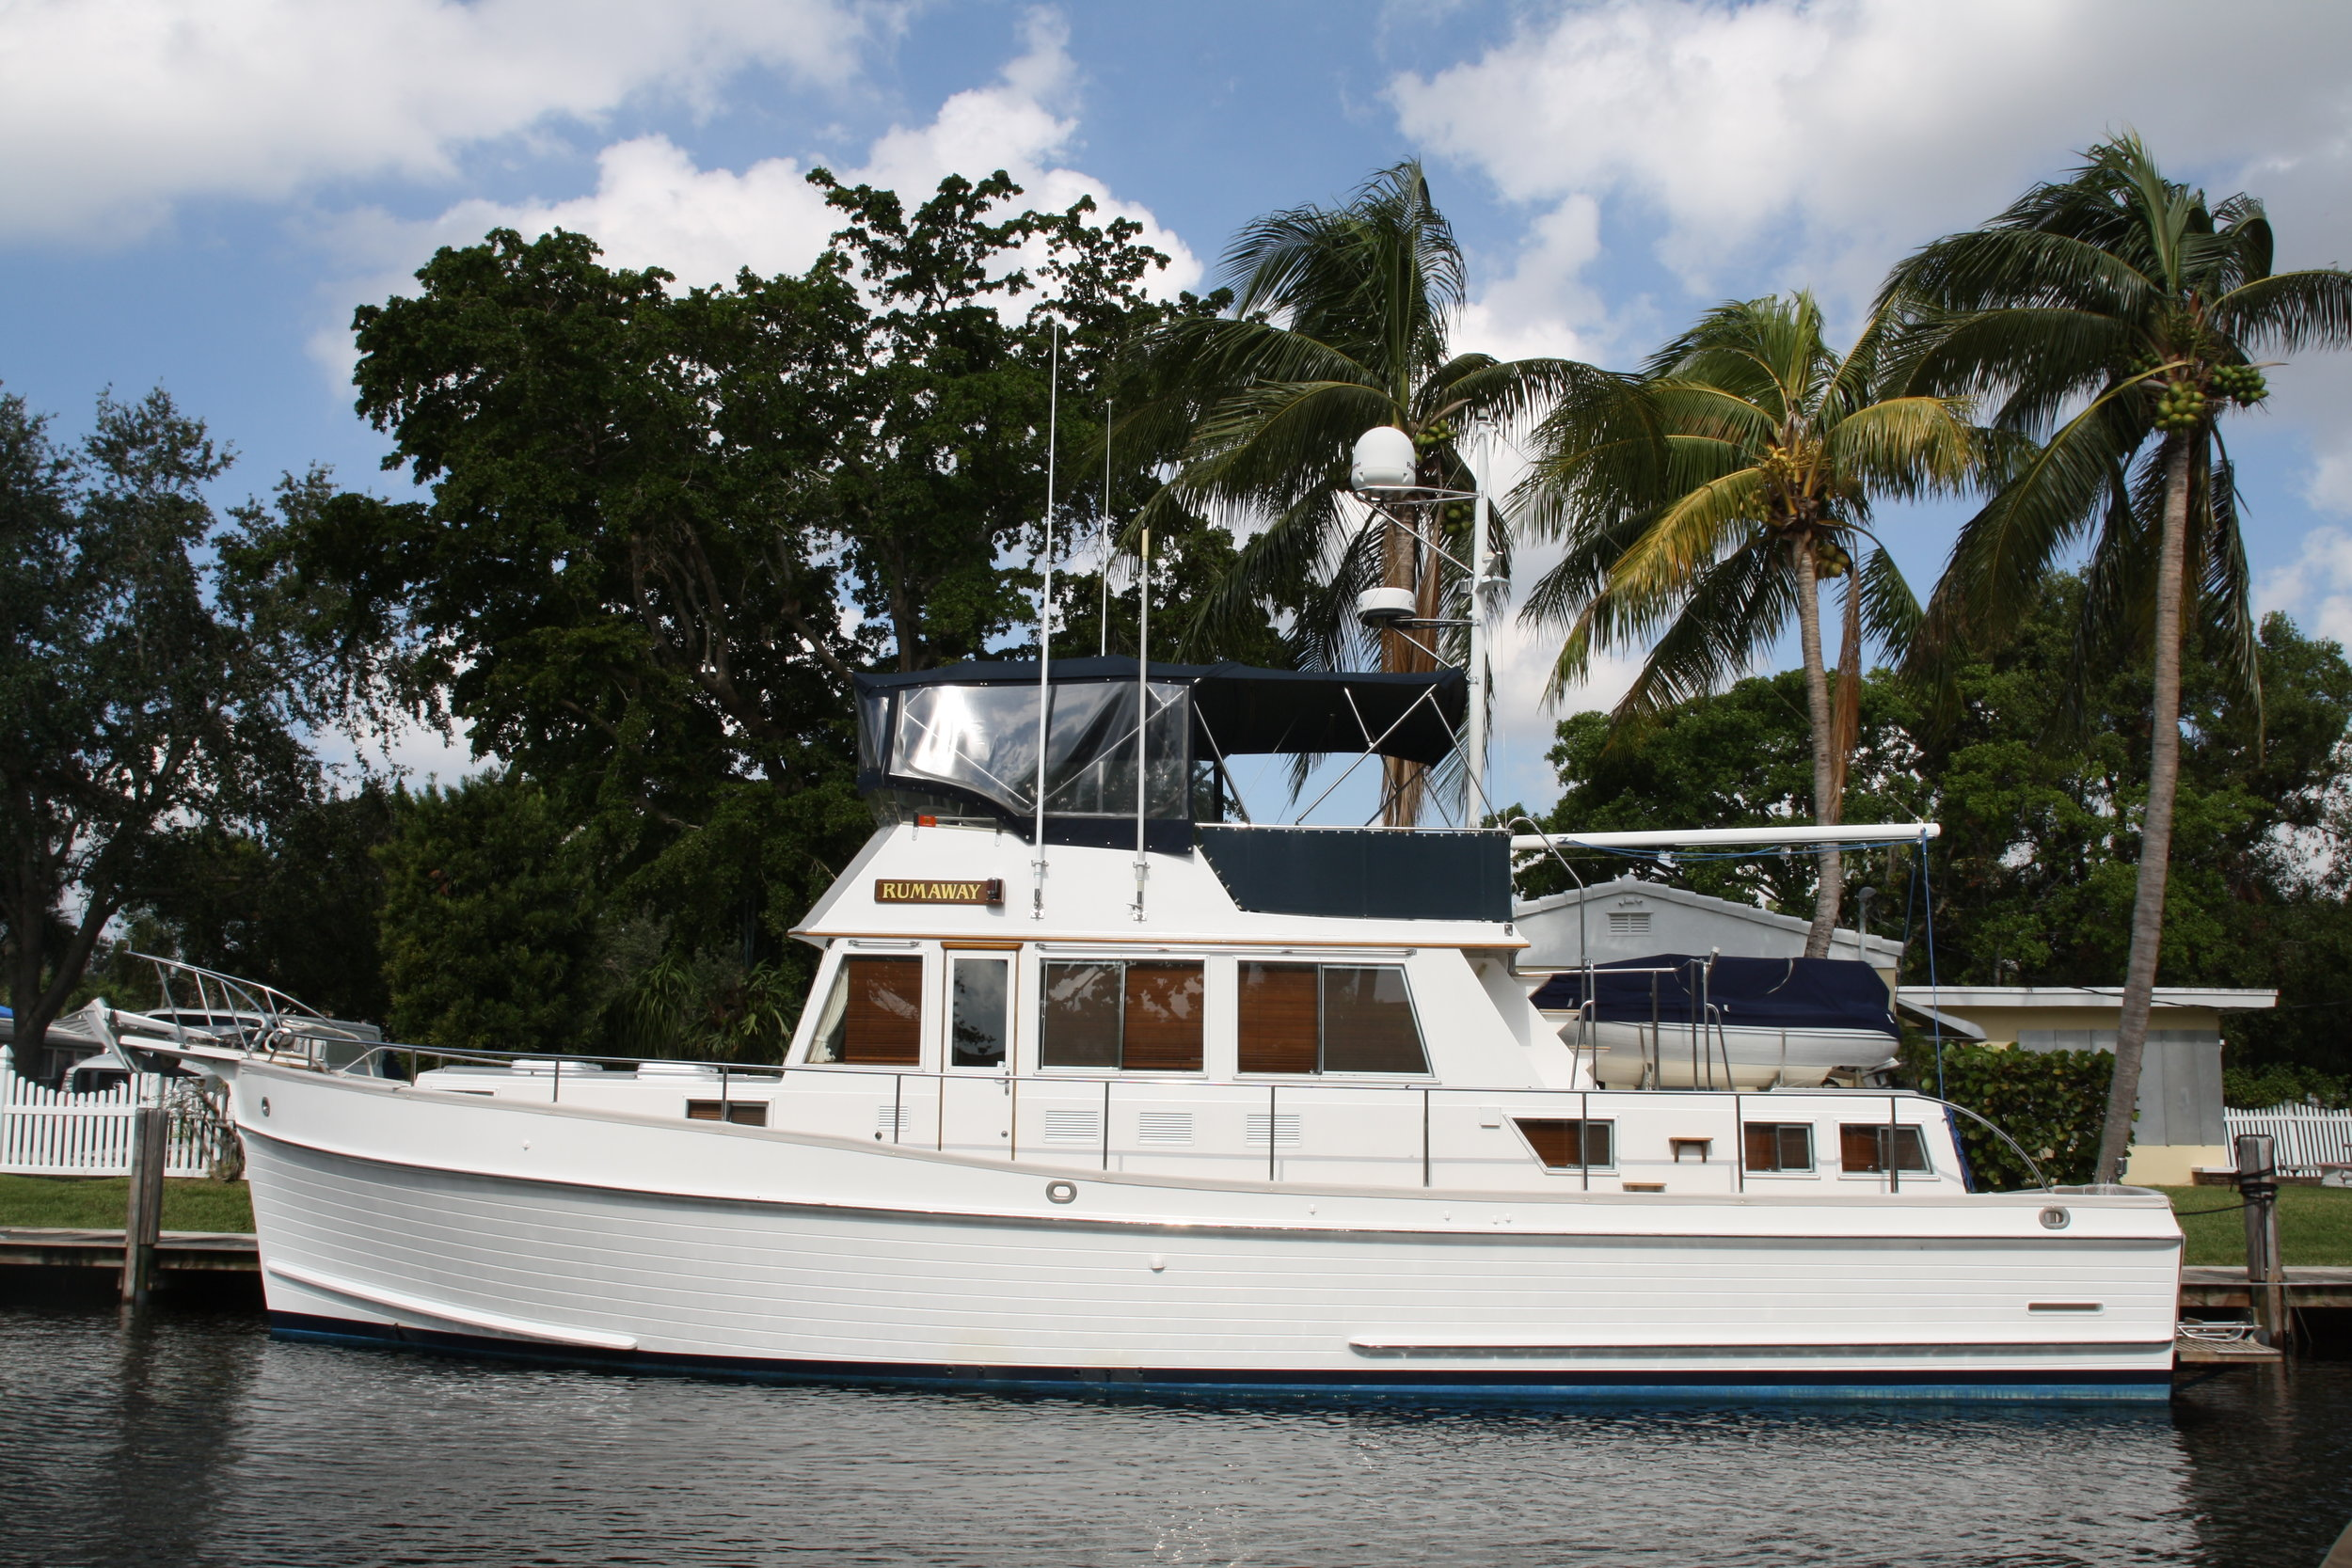 2001 model Grand Banks 46 Classic, RUMAWAY